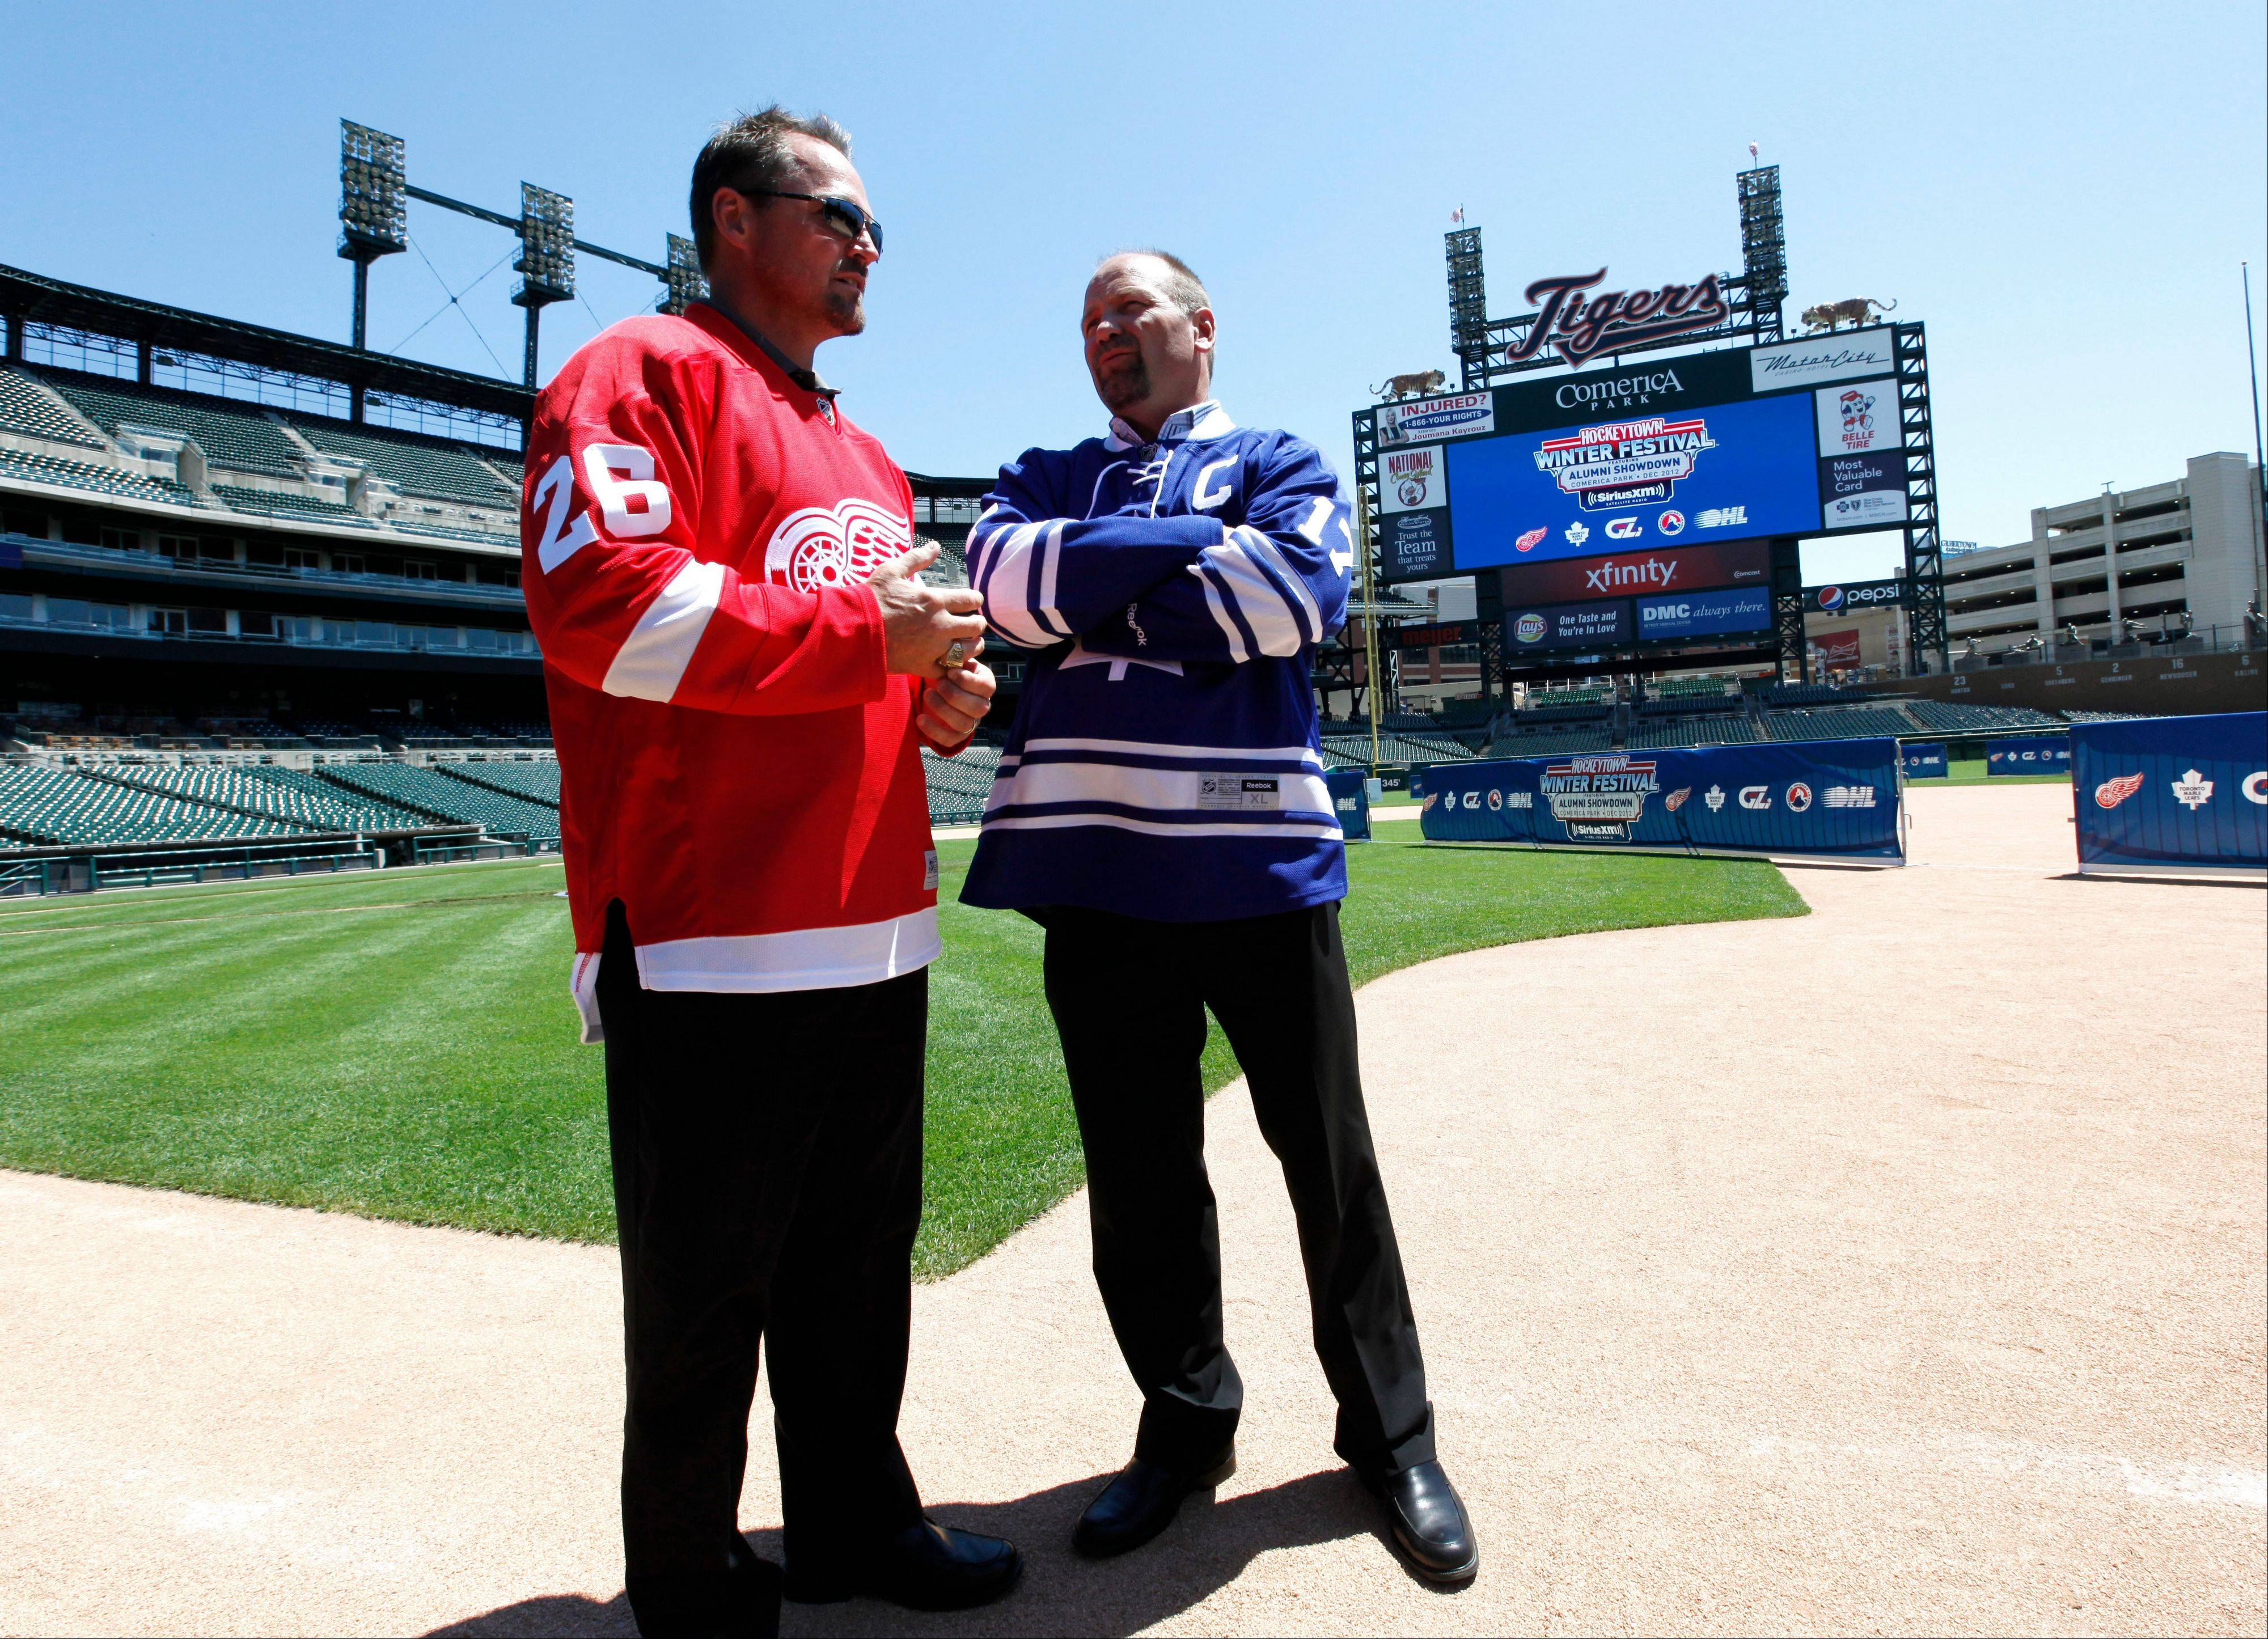 Former Detroit Red Wings player Joe Kocur, left, and former Toronto Maple Leafs player Wendel Clark took part in a news conference at Comerica Park in Detroit to announce the preliminary rosters for the Toronto Maple Leafs-Detroit Red Wings Alumni Showdown hockey game on Dec. 31. The two NHL clubs will also play in the Winter Classic at Michigan Stadium on Jan. 1.